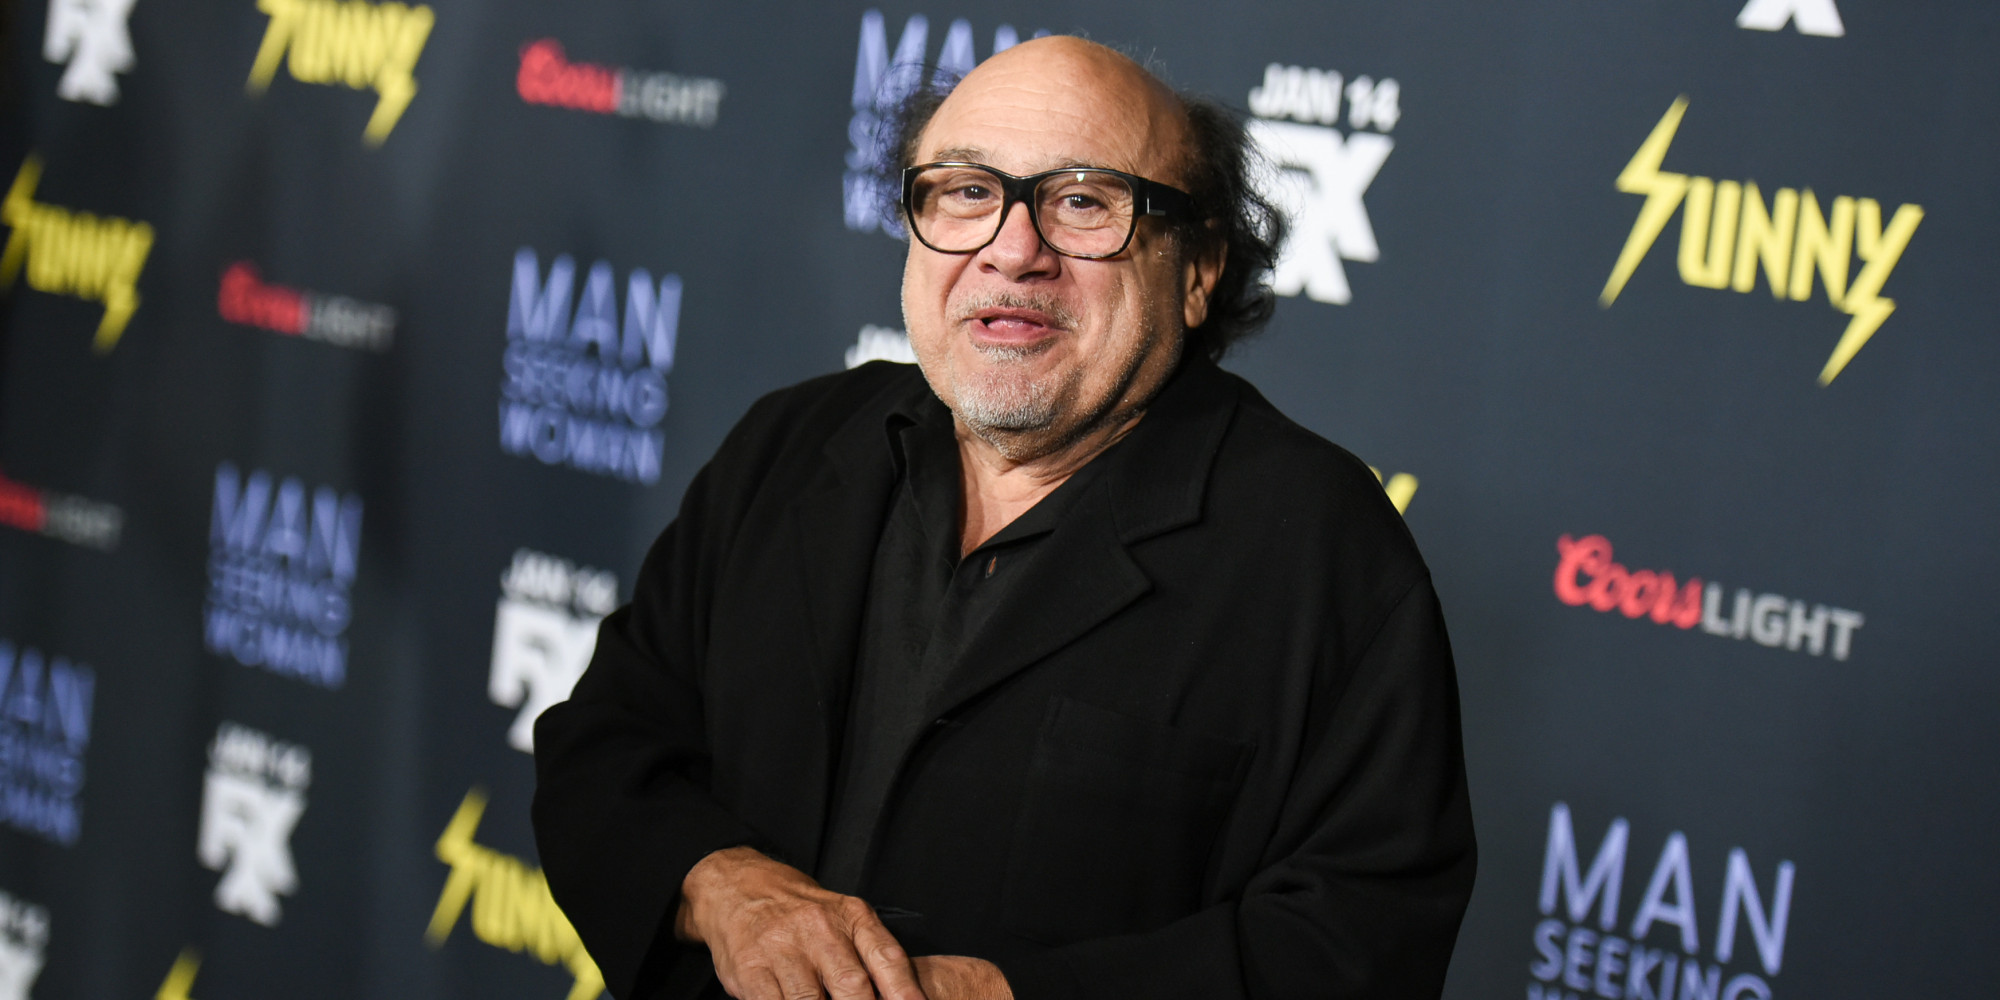 danny devito at 70 a national treasure on sex drugs and